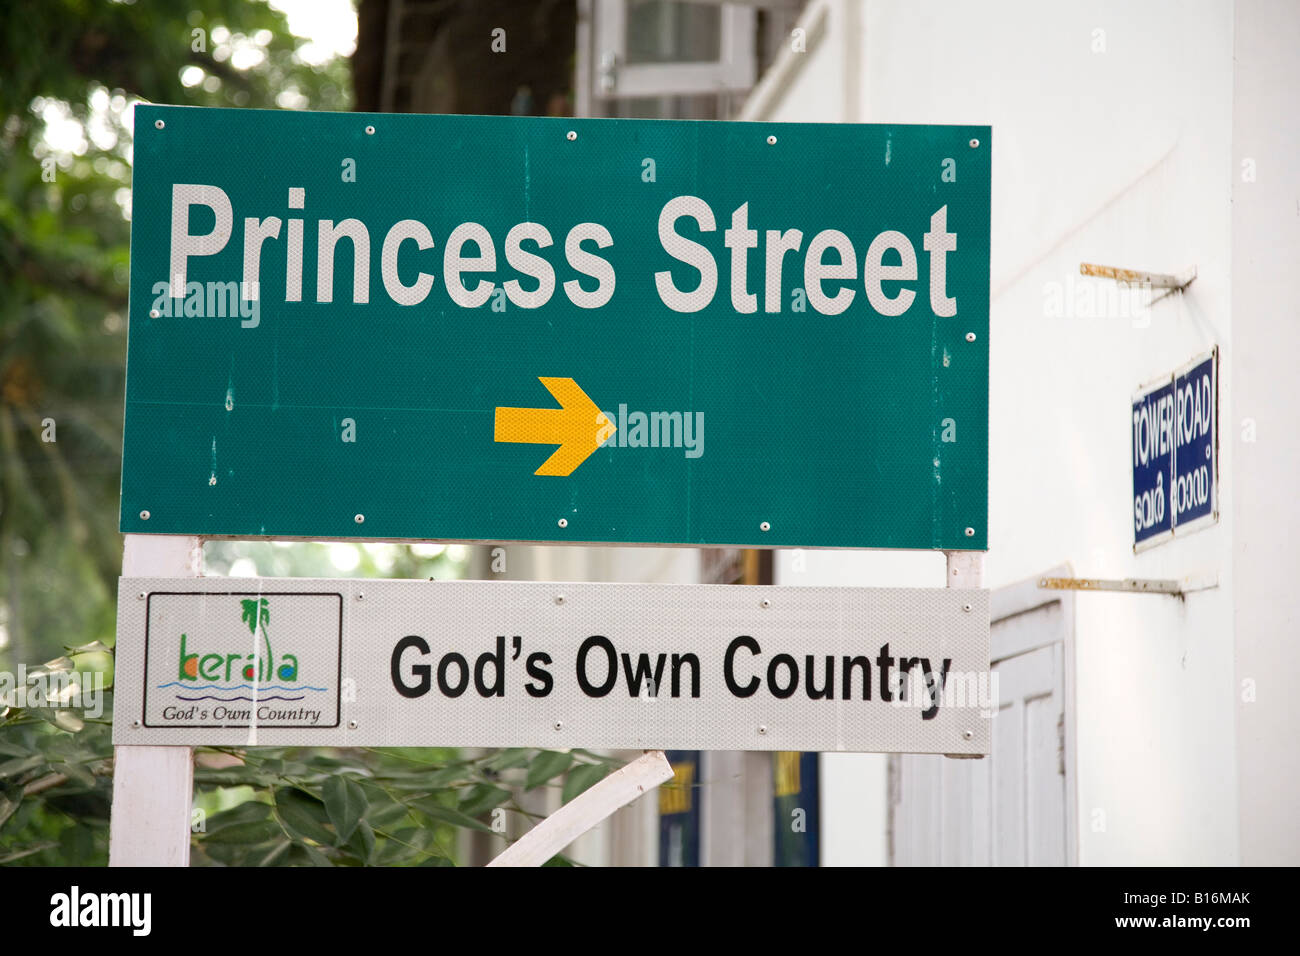 A street sign in Kochi (in Kerala, India). Kerala is marketed successfully as 'God's Own Country'. - Stock Image